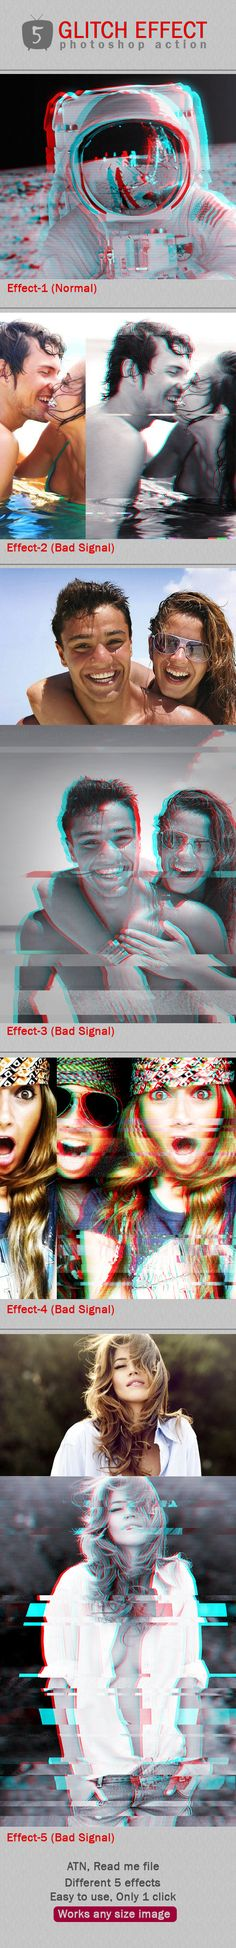 Glitch Photoshop Effects #photoeffect Download: http://graphicriver.net/item/glitch-ps-effects/12048608?ref=ksioks